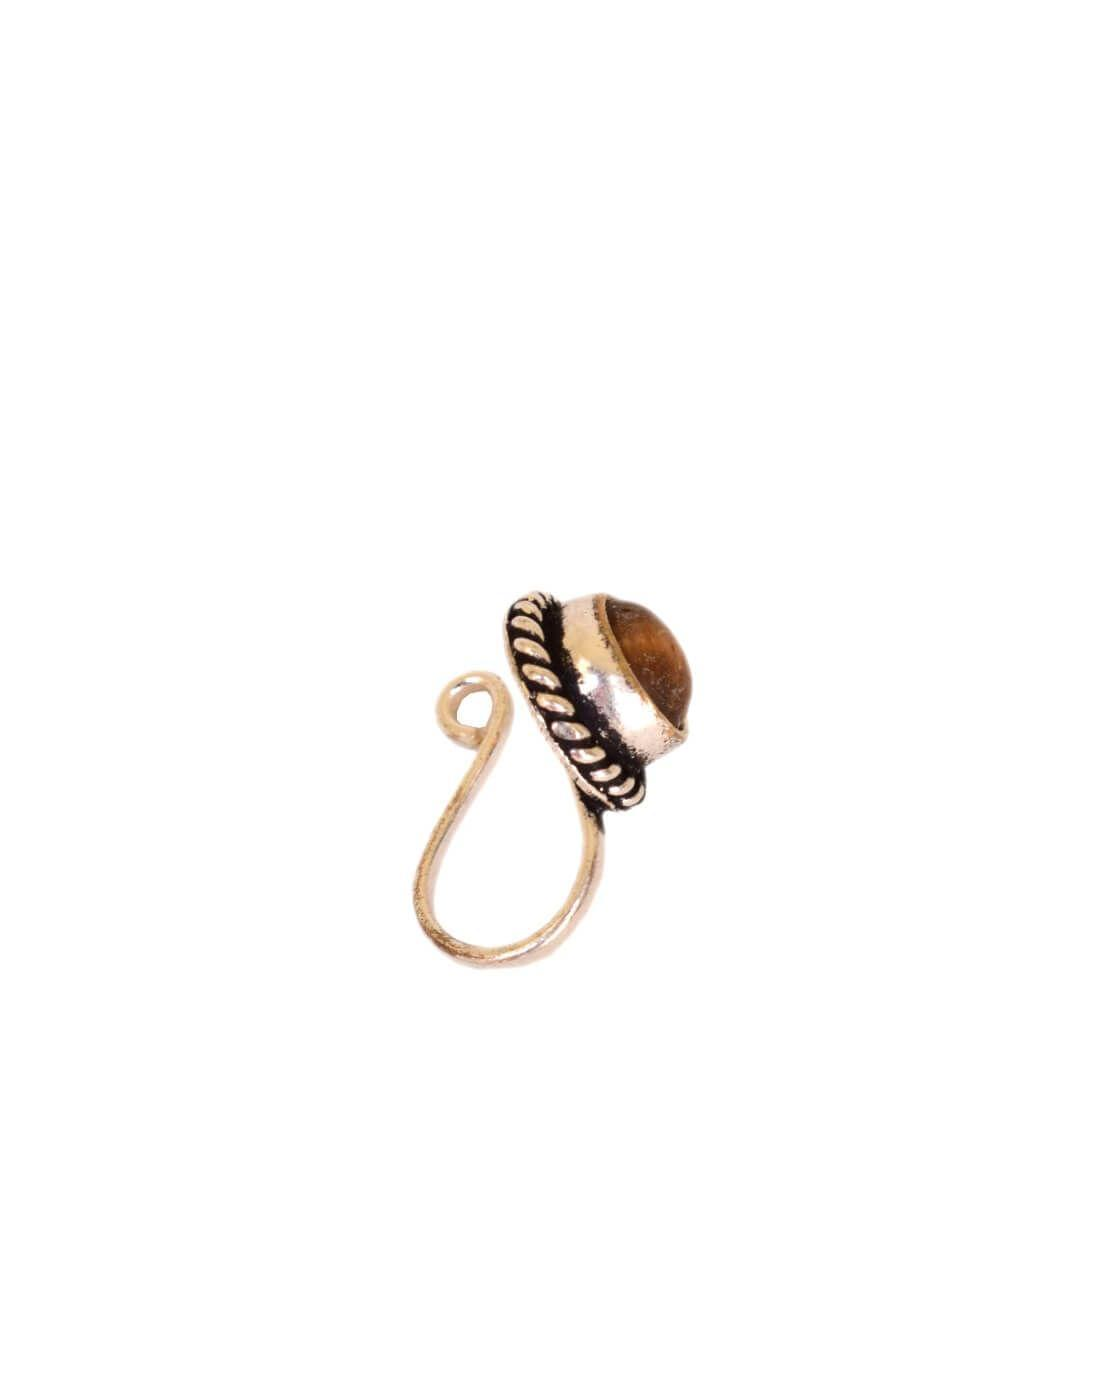 Oxidized Metal Nose Pin Brown Bead Nose Pin